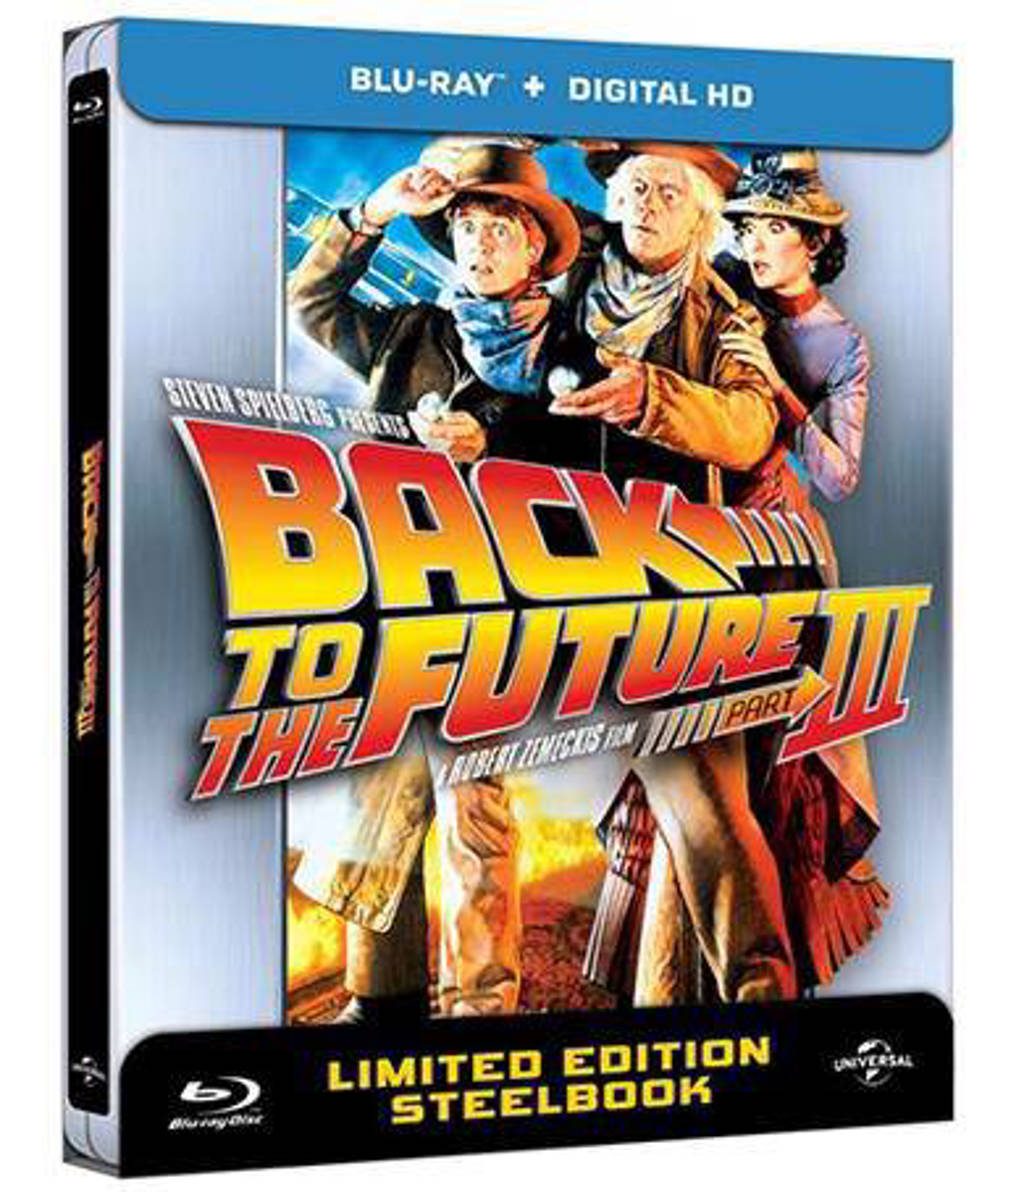 Back to the future 3 (Blu-ray)